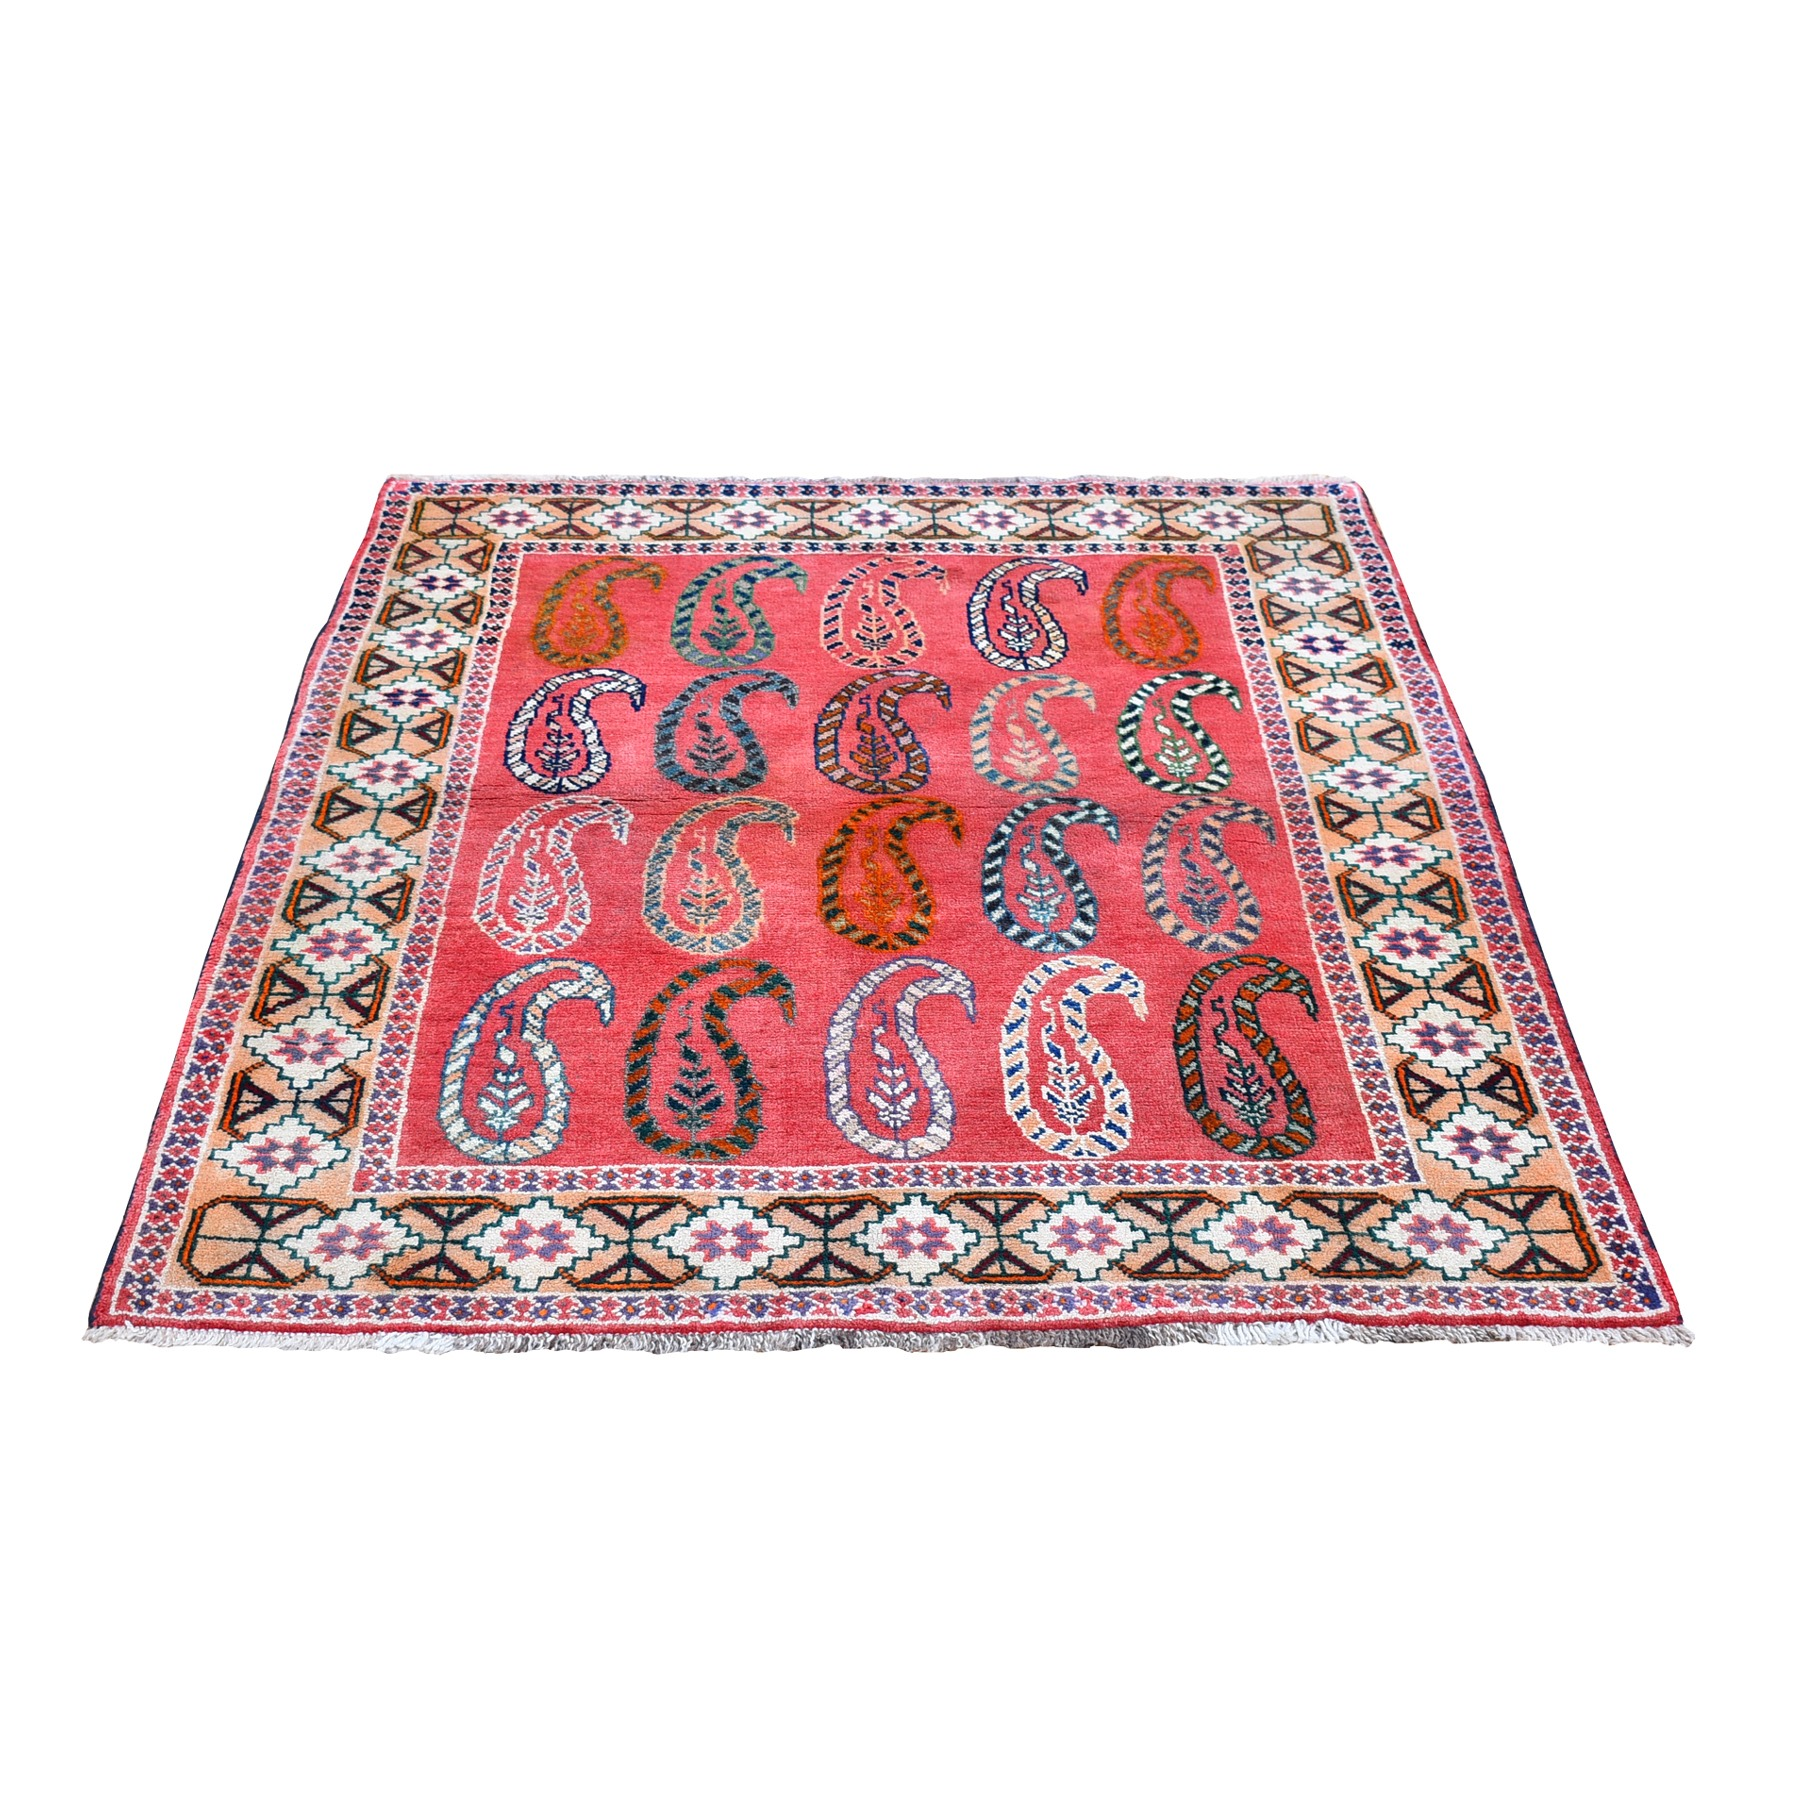 "3'10""x5'2"" Pink Vintage Persian Afshar with Paisley Boteh Design Pure Wool Hand Knotted Oriental Rug"